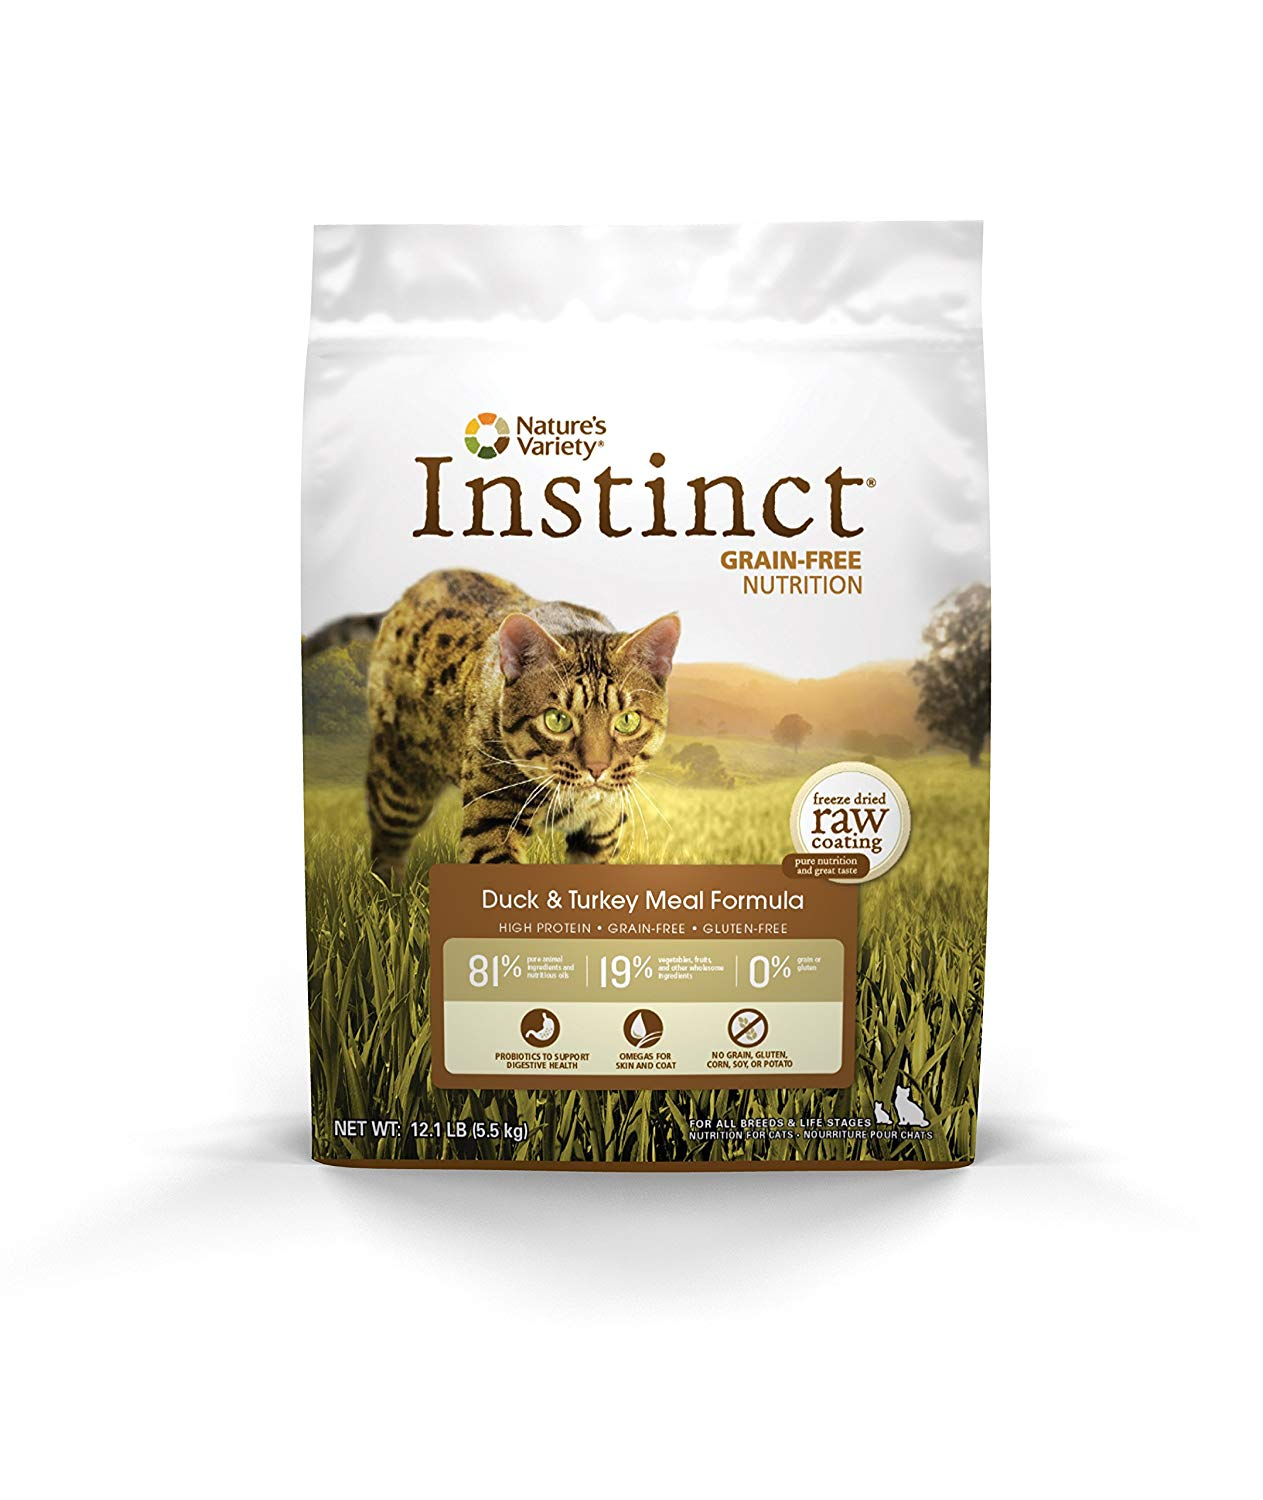 Instinct by Nature's Variety Grain-Free Duck & Turkey Meal Formula Dry Cat Food, 5.5-lb (Size: 5.5-lb) Image